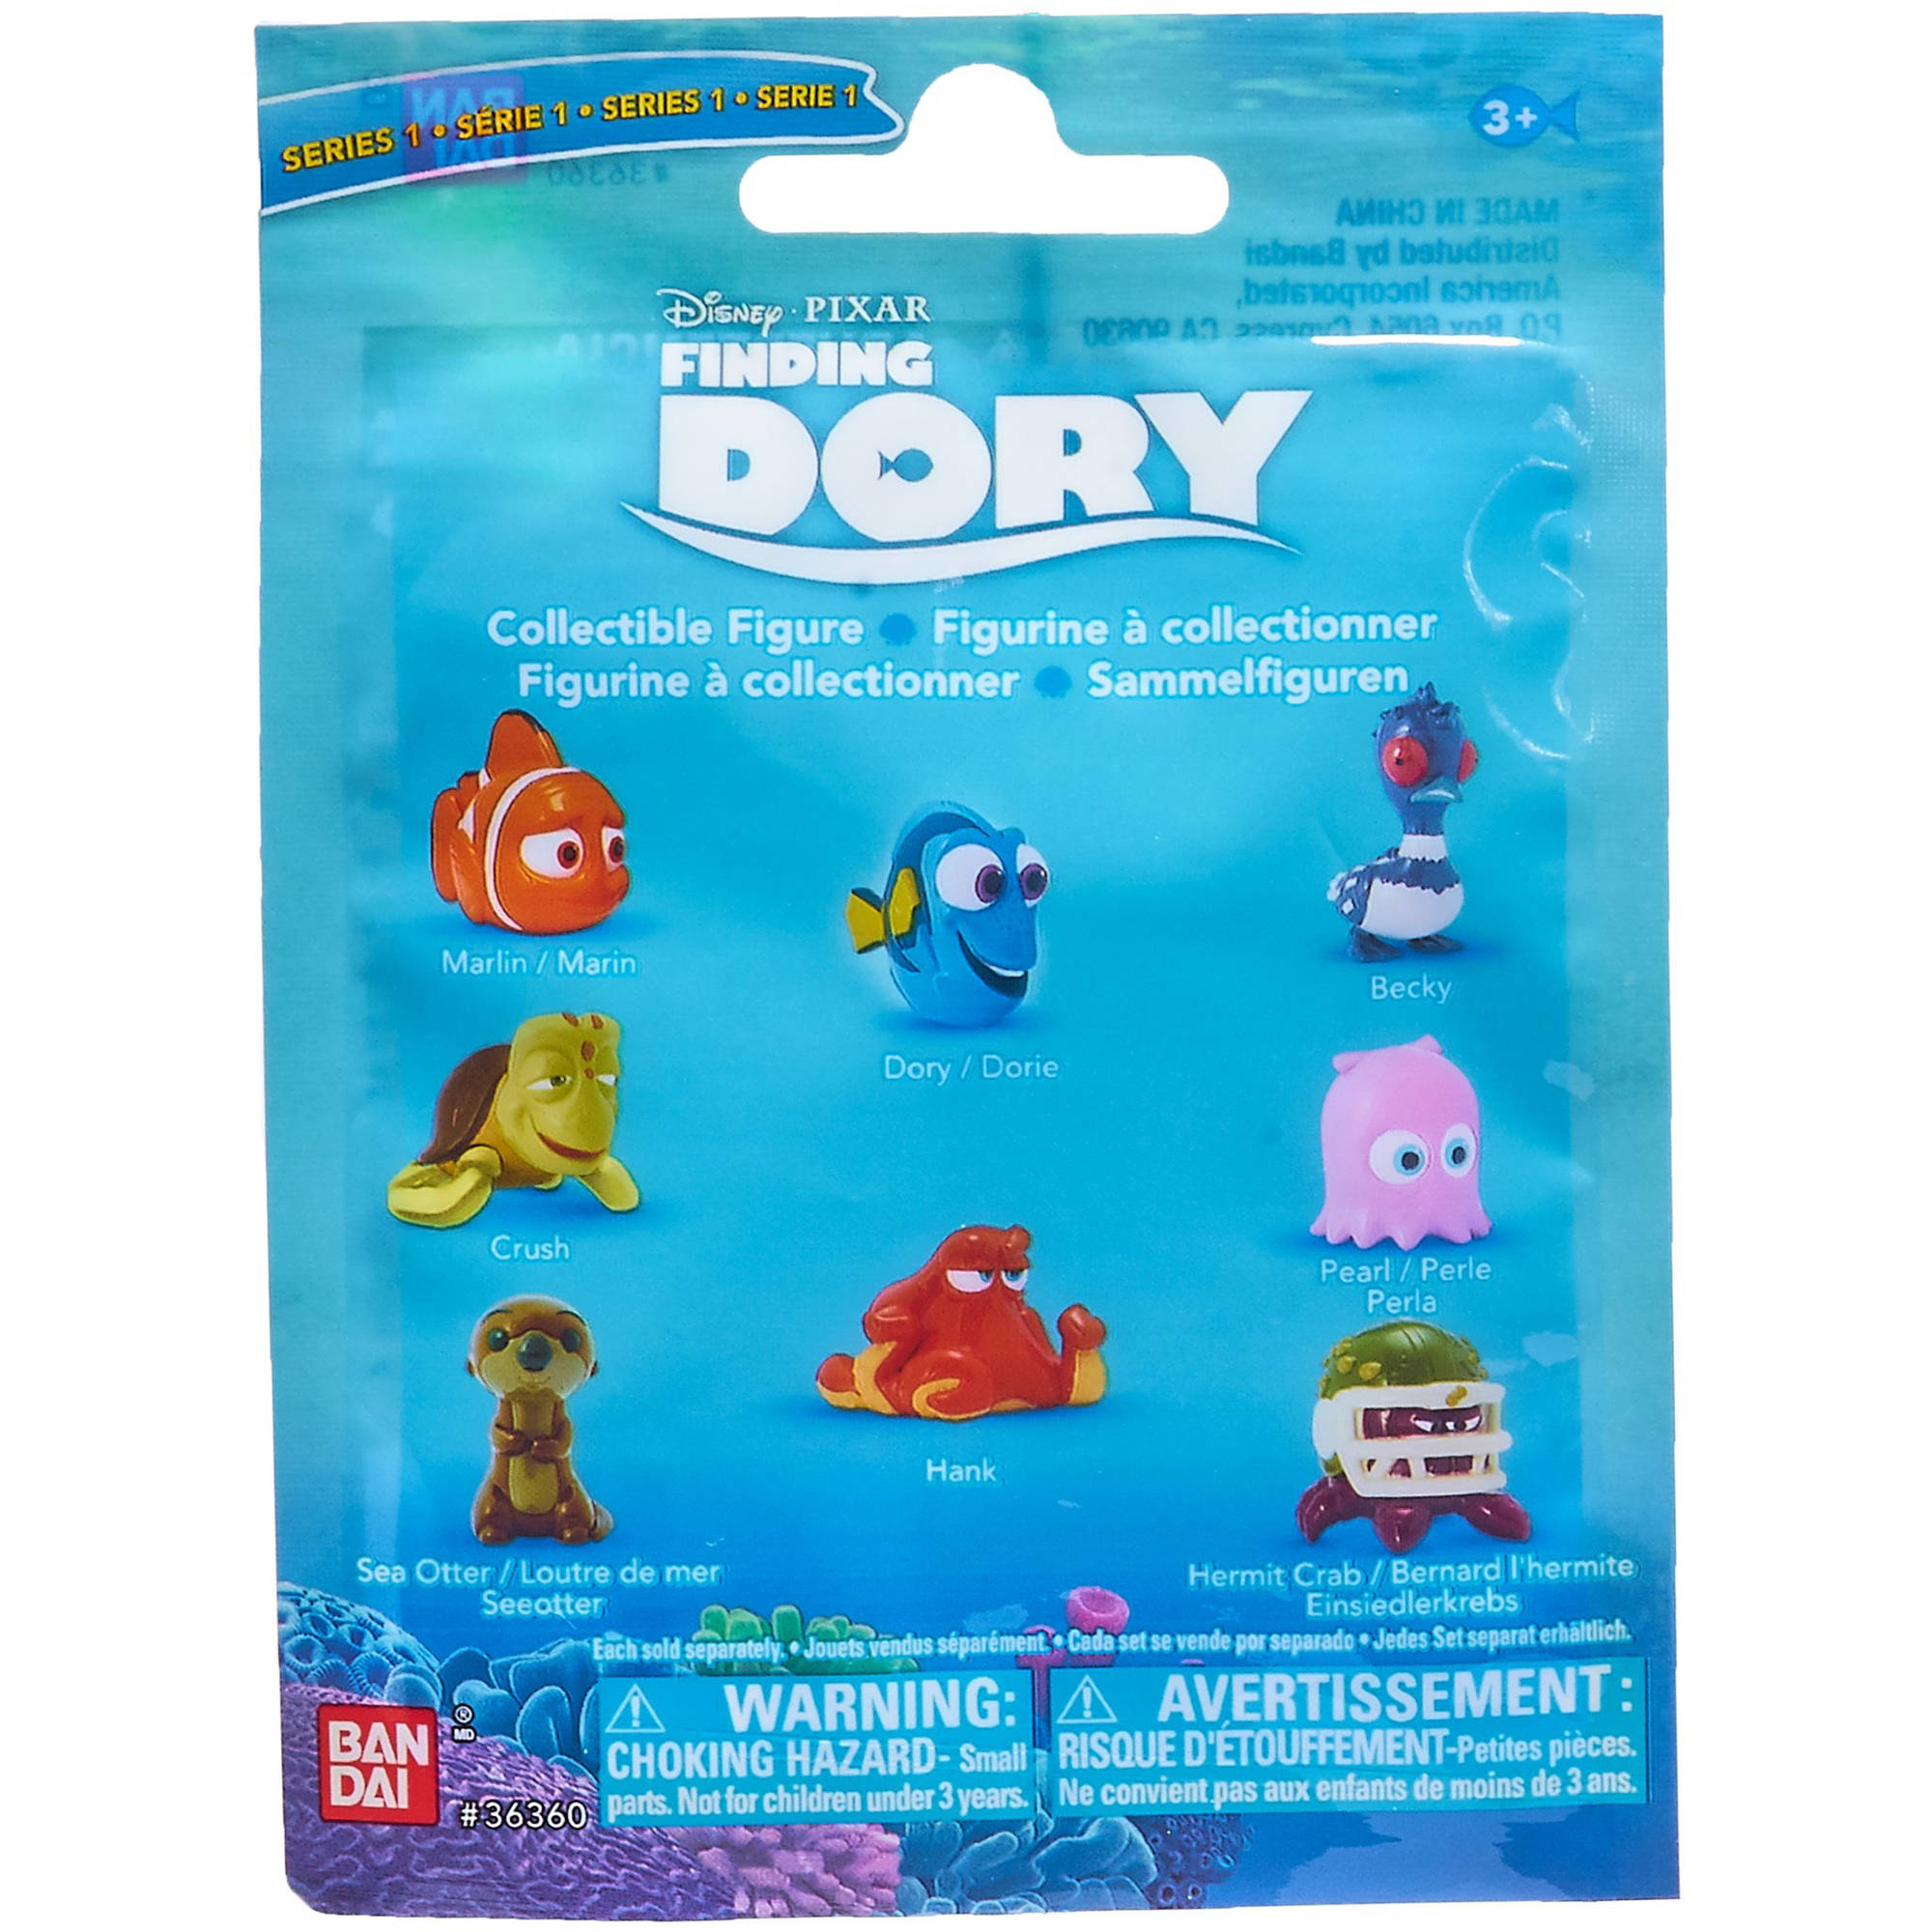 Finding Dory Collectible Blind Bag Number 1